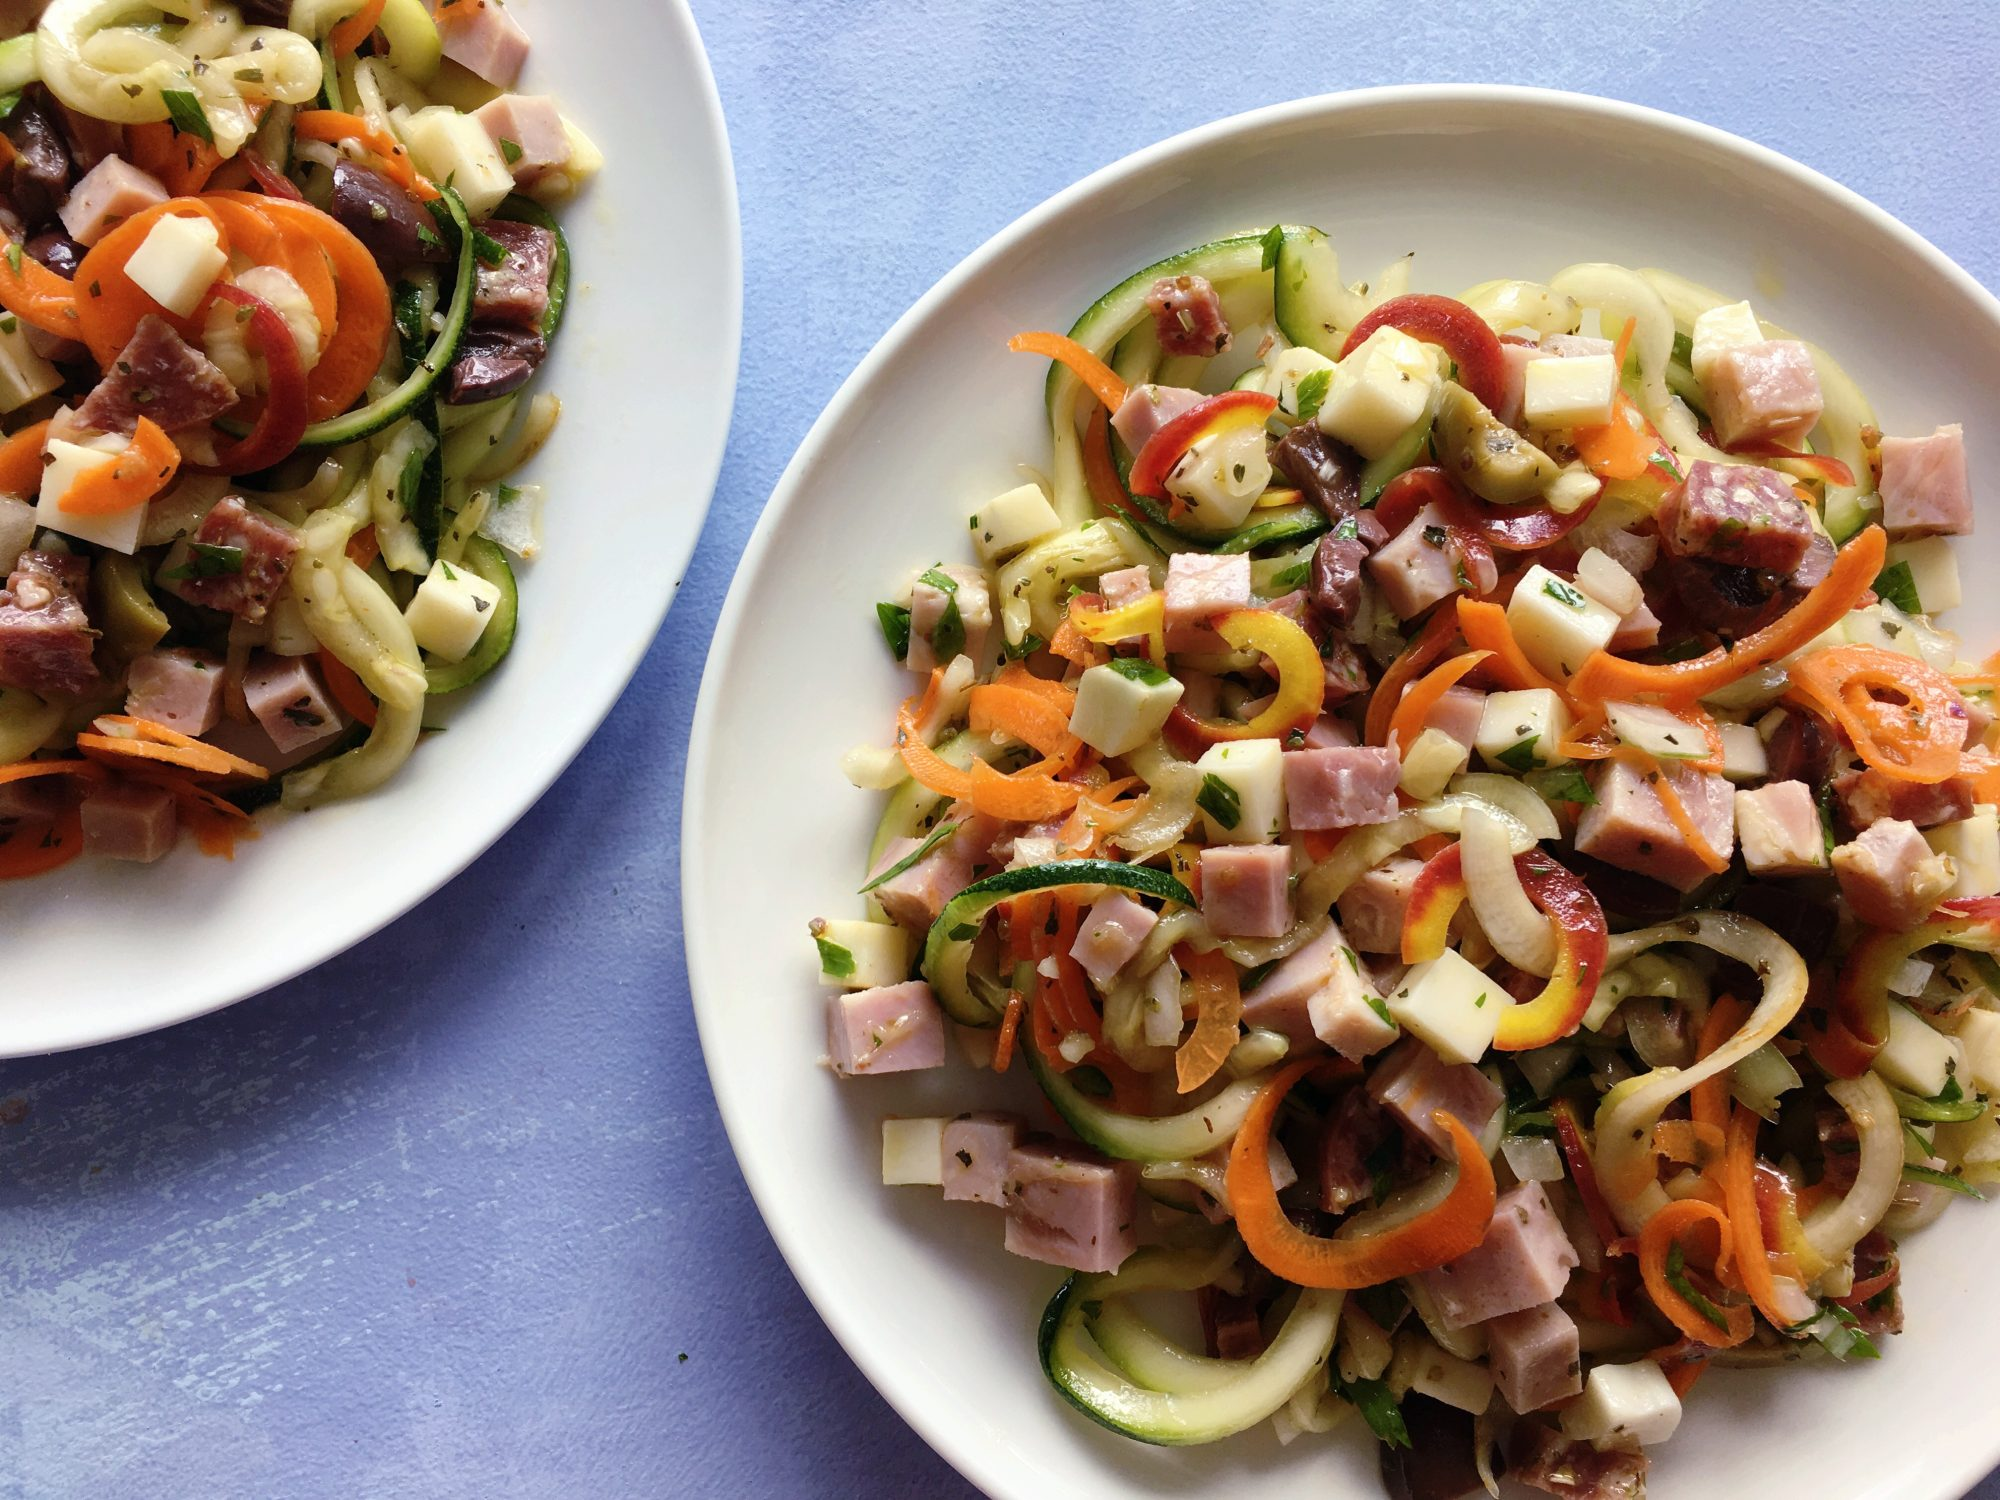 Muffuletta Zucchini and Carrot Noodle Salad